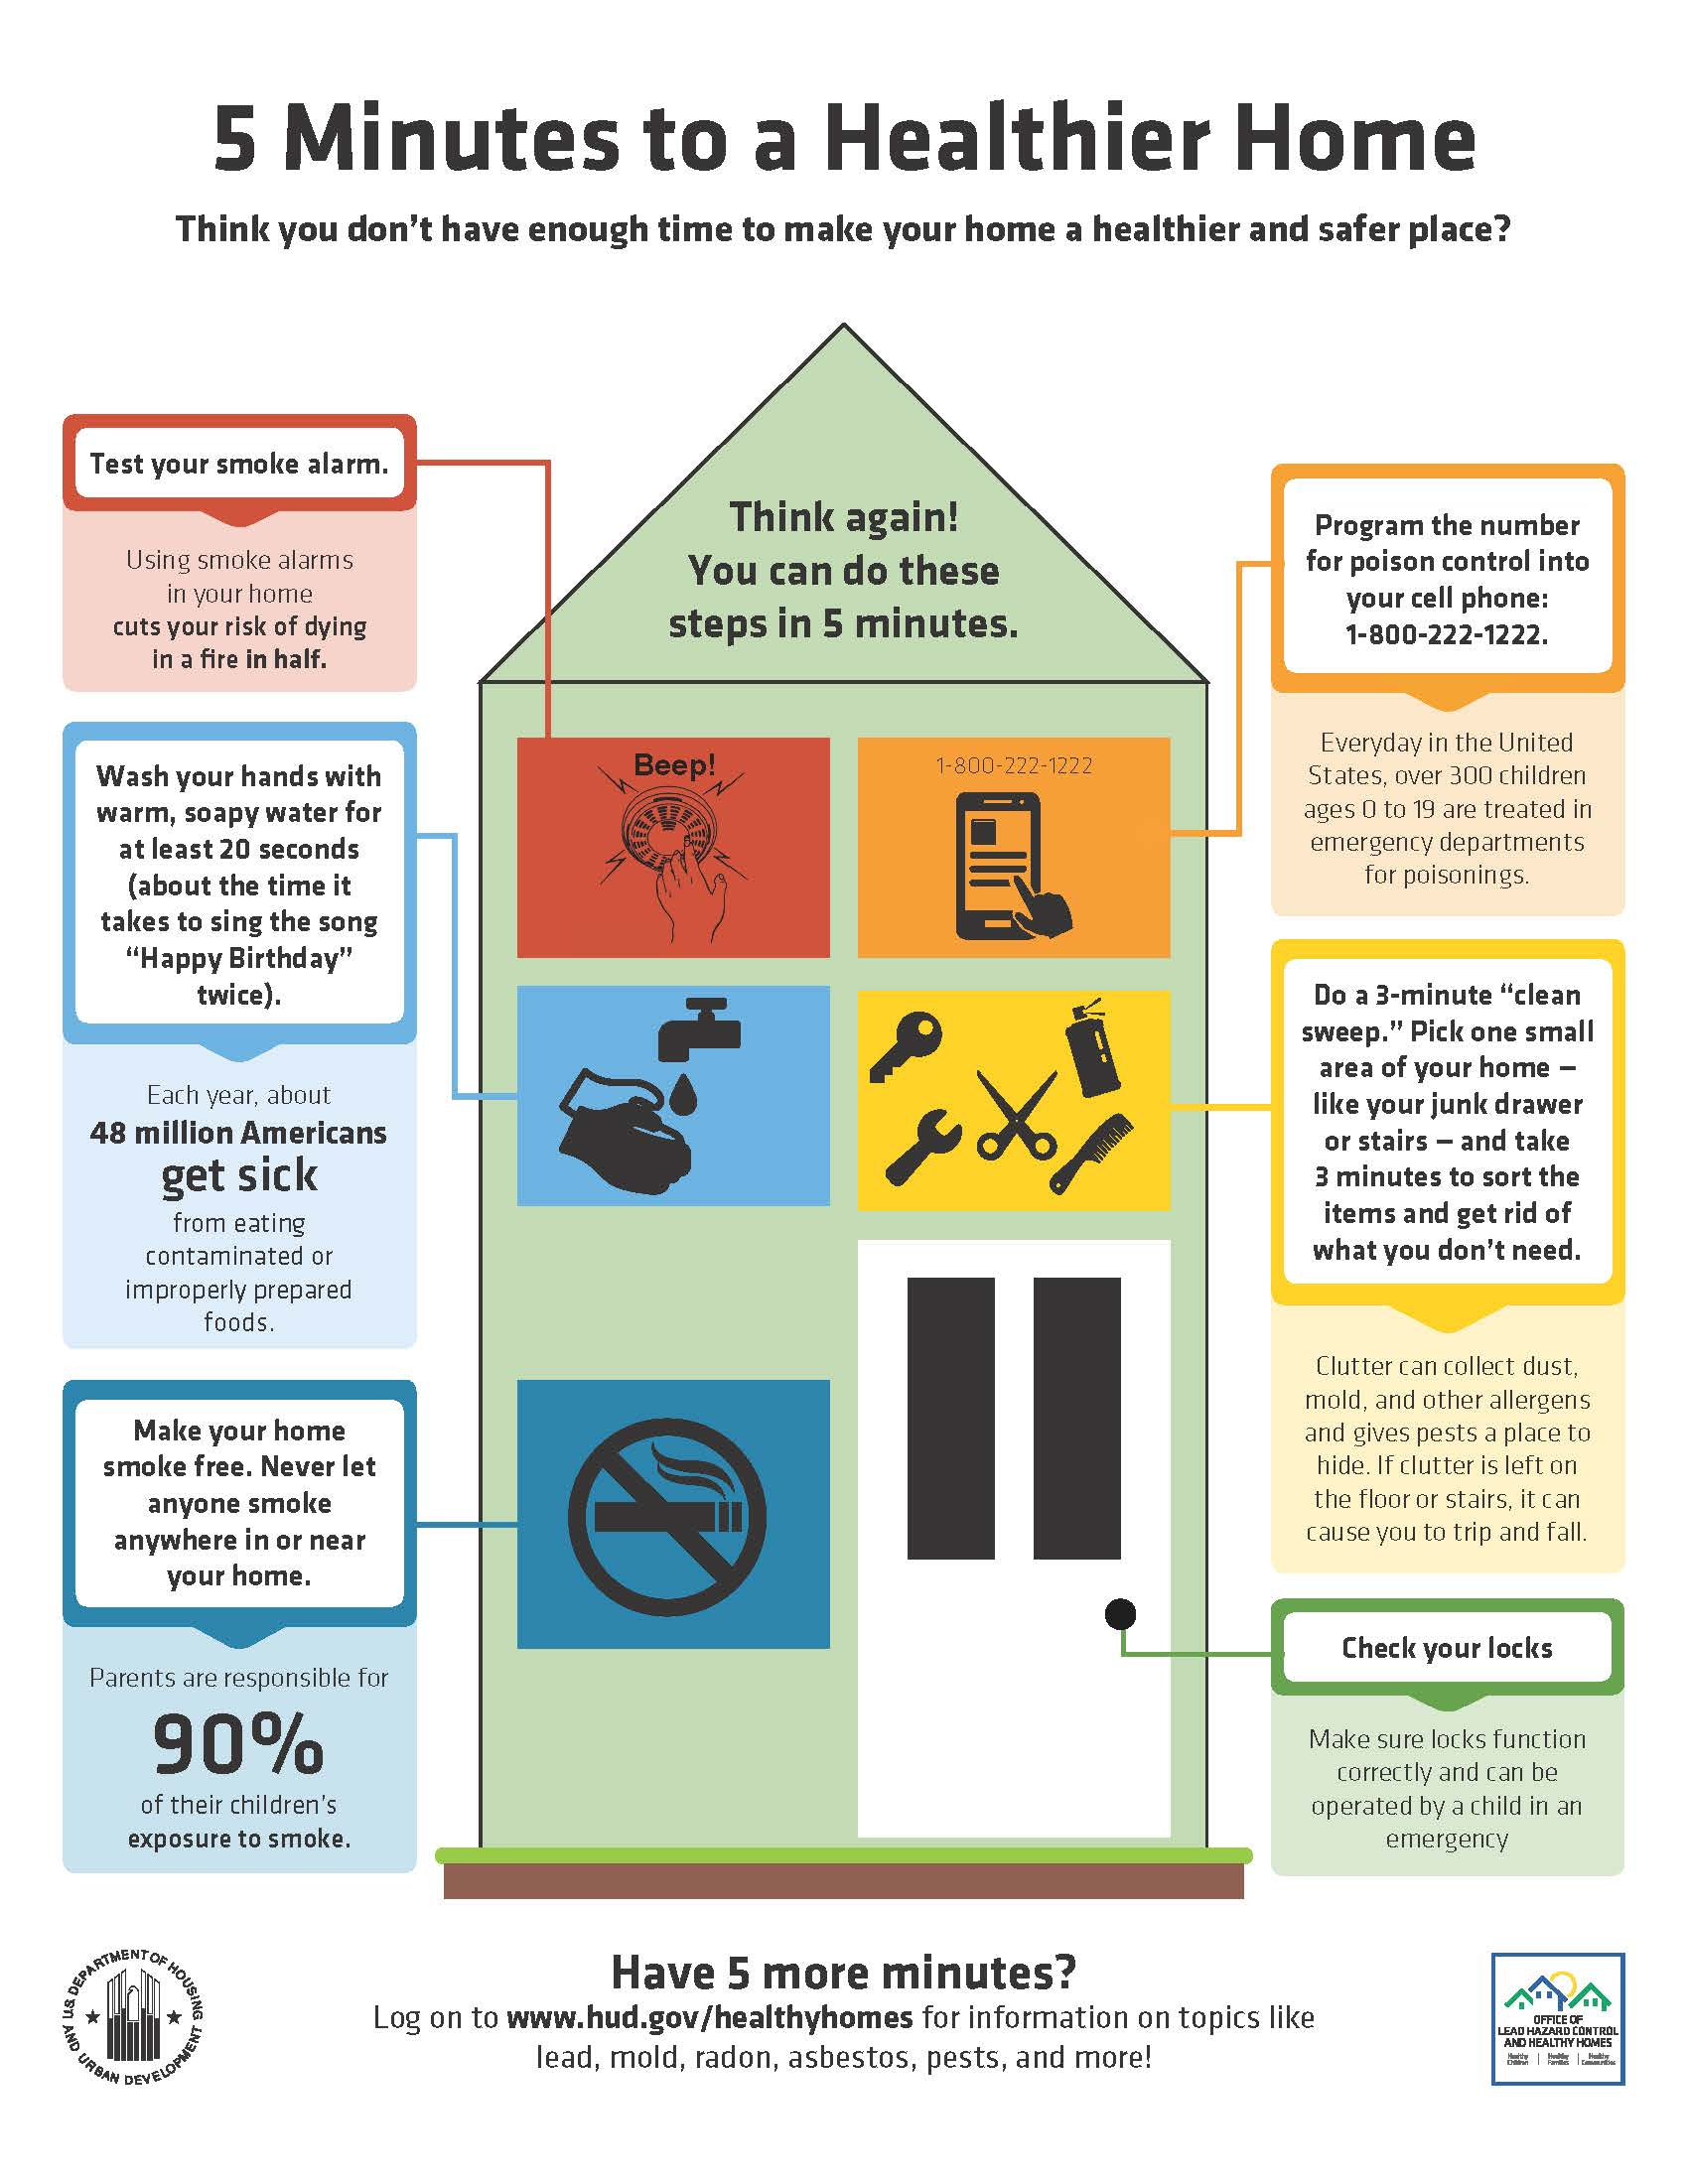 Info graphic - 5 MINUTES to a healthy home